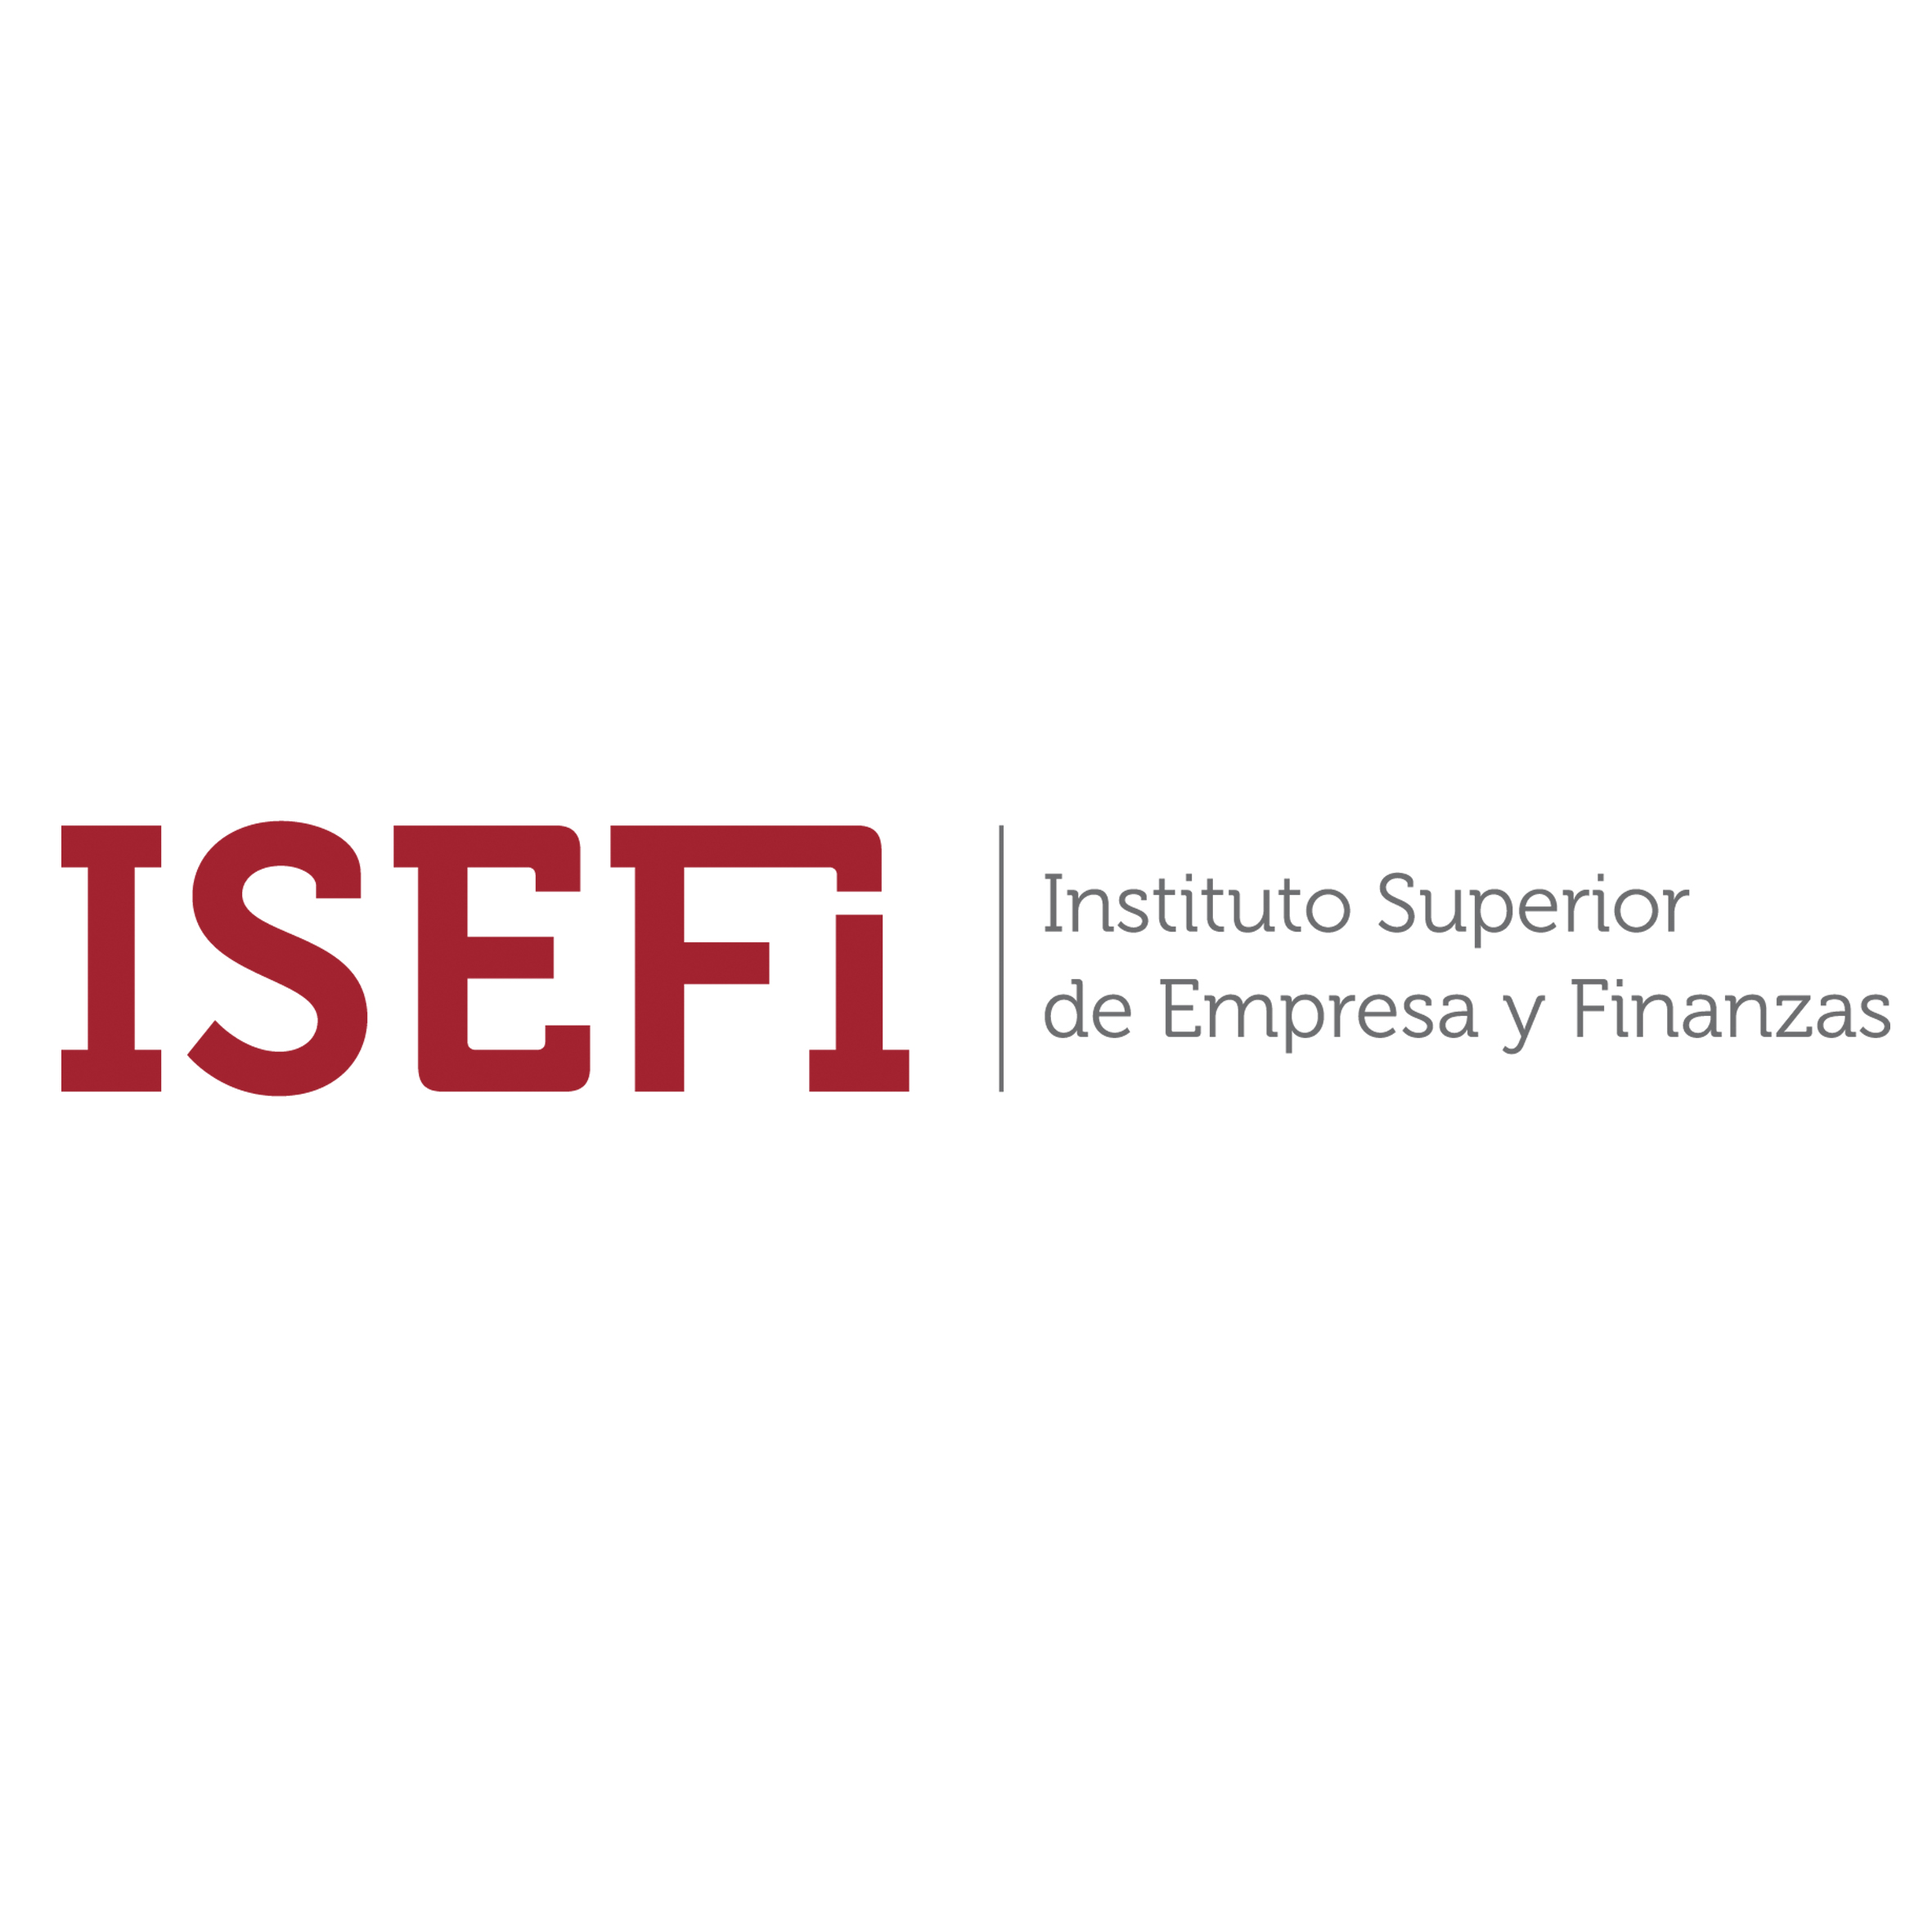 Instituto Superior de Empresa y Finanzas